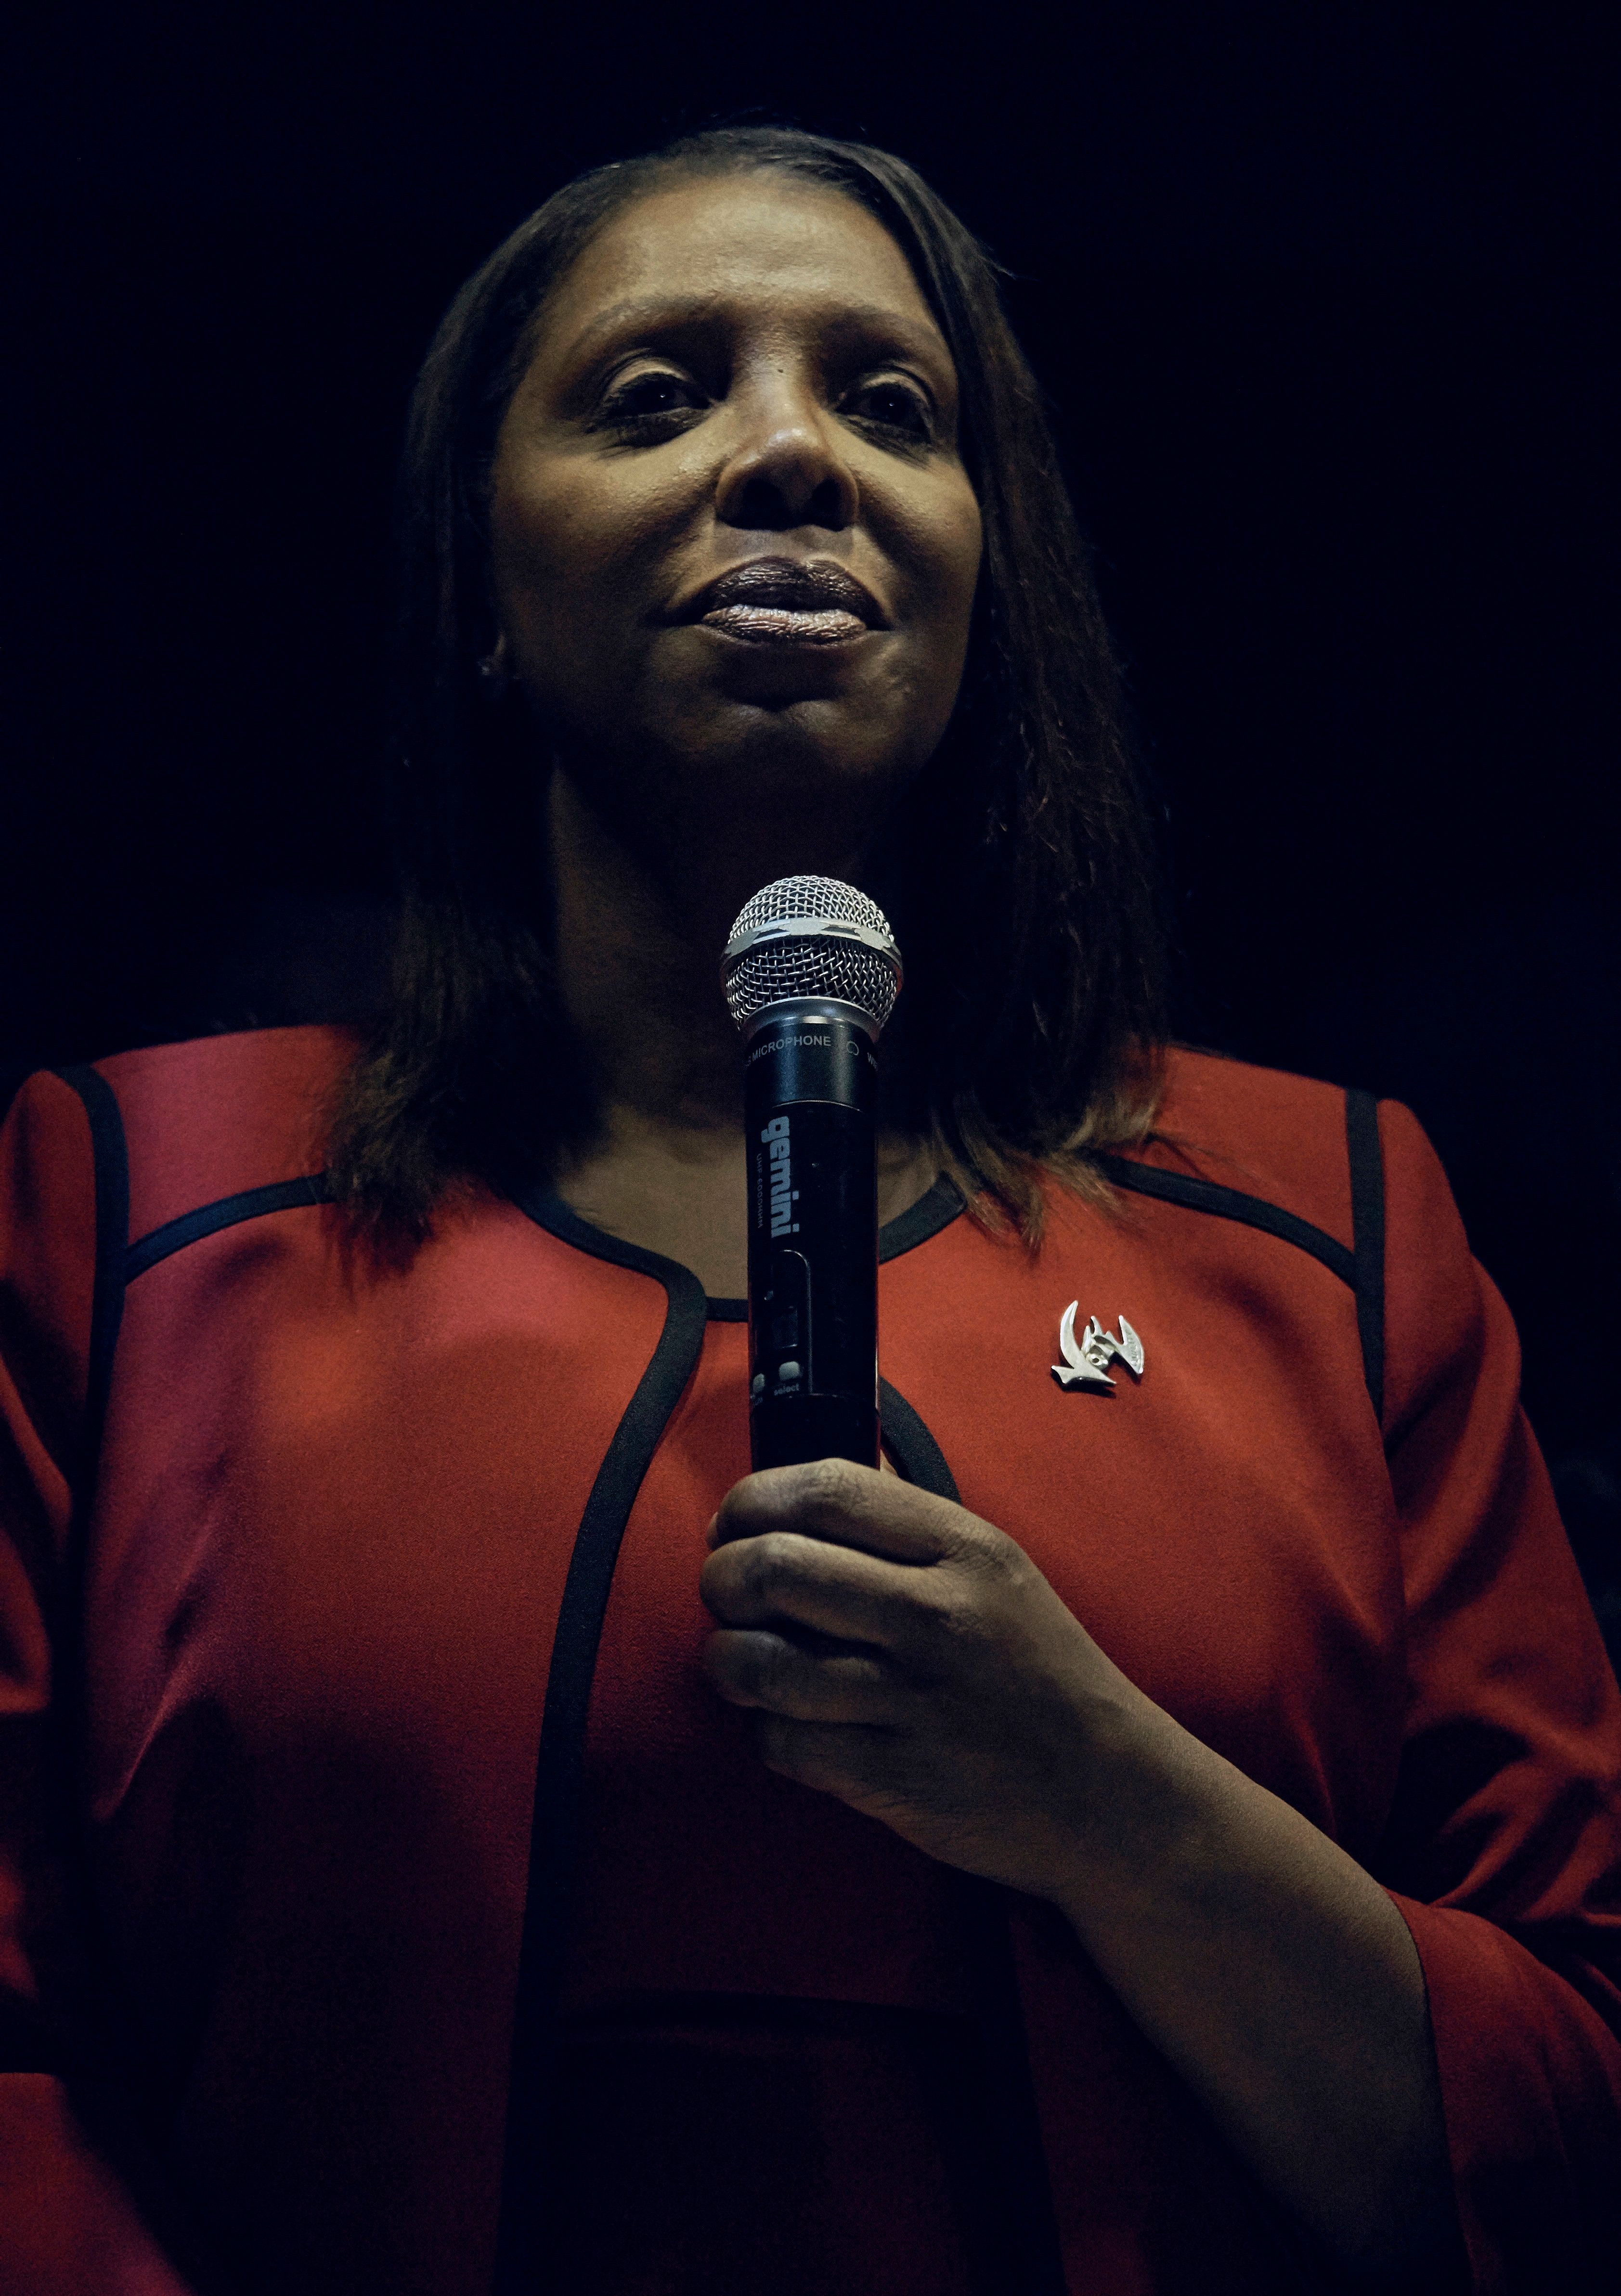 Democratic elected Attorney General New York Letitia James speaks during her election night party in Brooklyn borough of New York, Tuesday, Nov. 6, 2018. (AP Photo/Andres Kudacki)